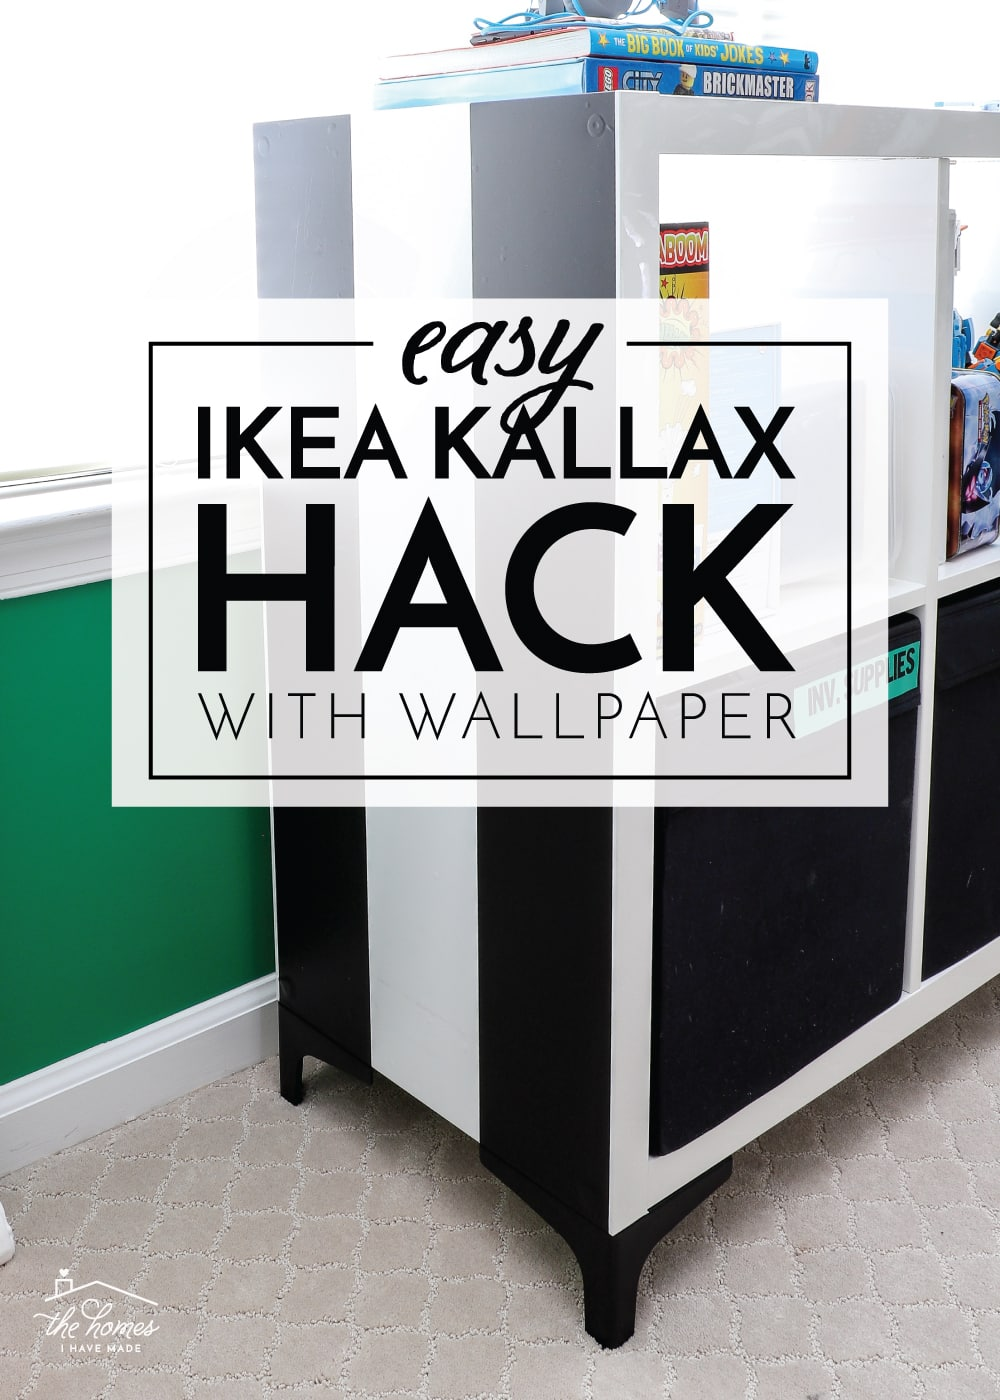 IKEA Kallax Hack with Wallpaper 1